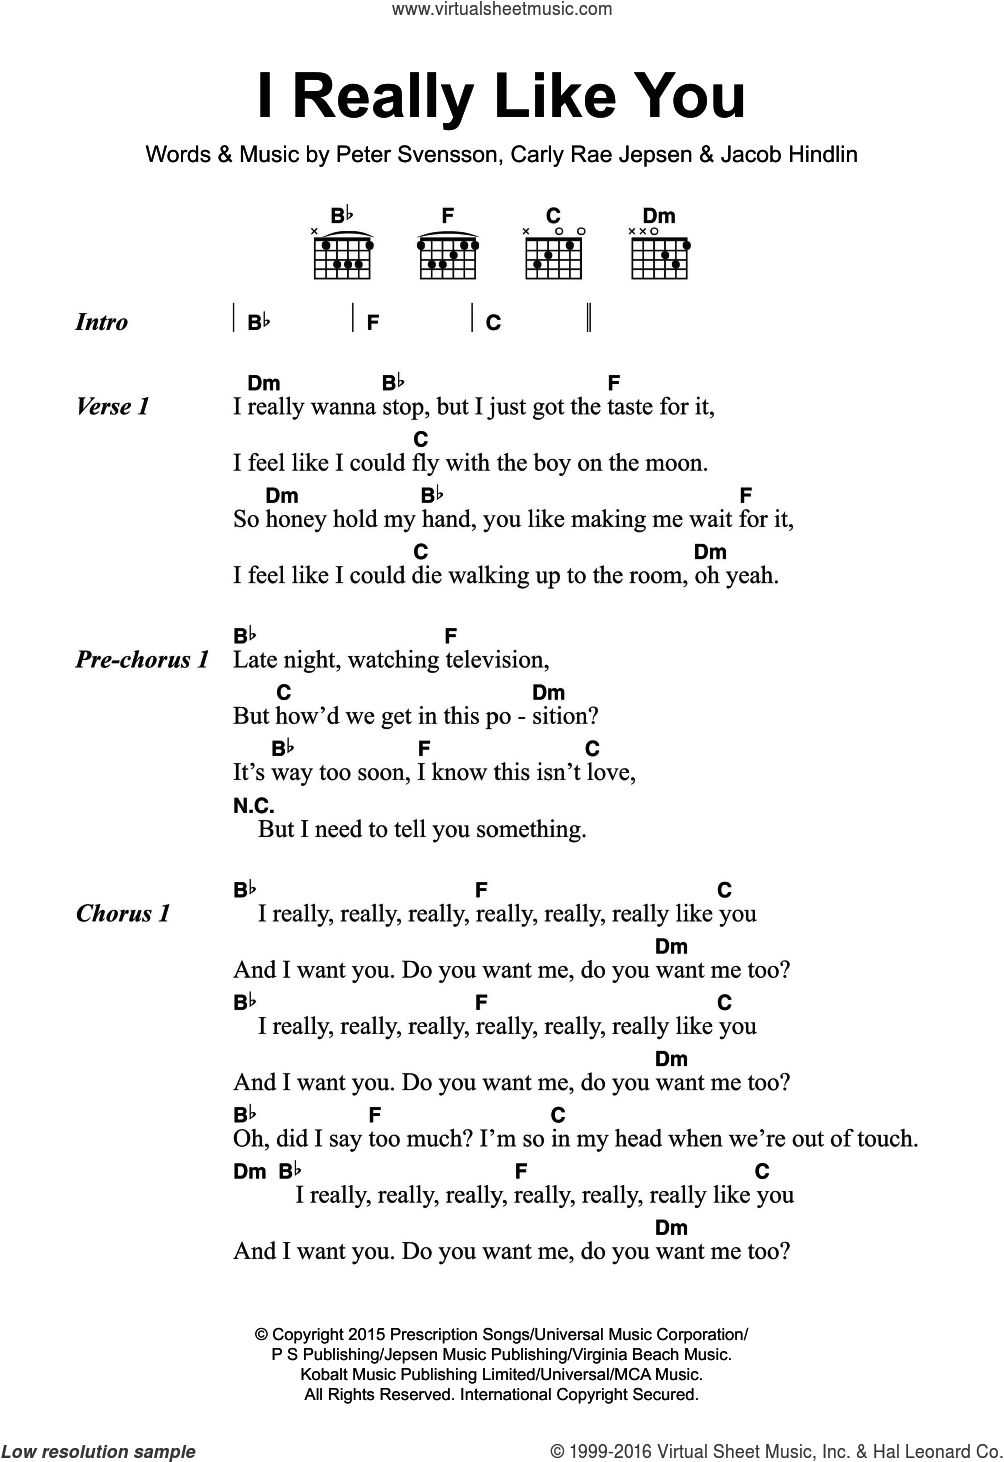 I Really Like You sheet music for guitar (chords) by Carly Rae Jepsen, Jacob Hindlin and Peter Svensson, intermediate skill level